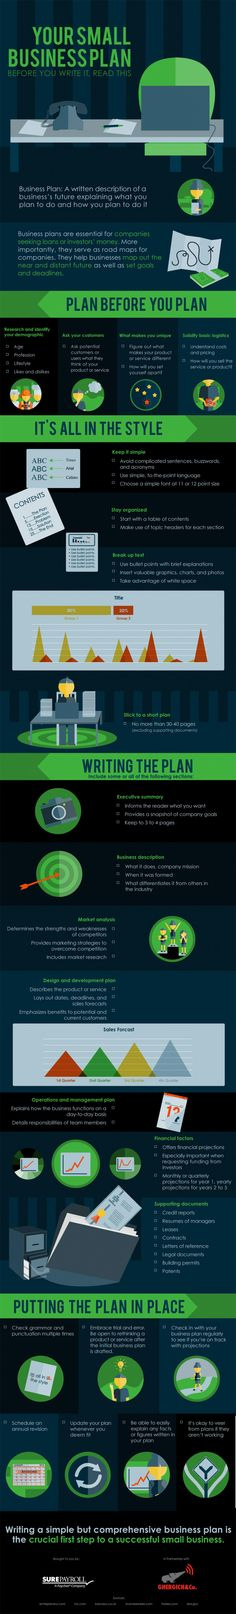 Infographic: Your Small Business Plan, Before You Write it, Read This